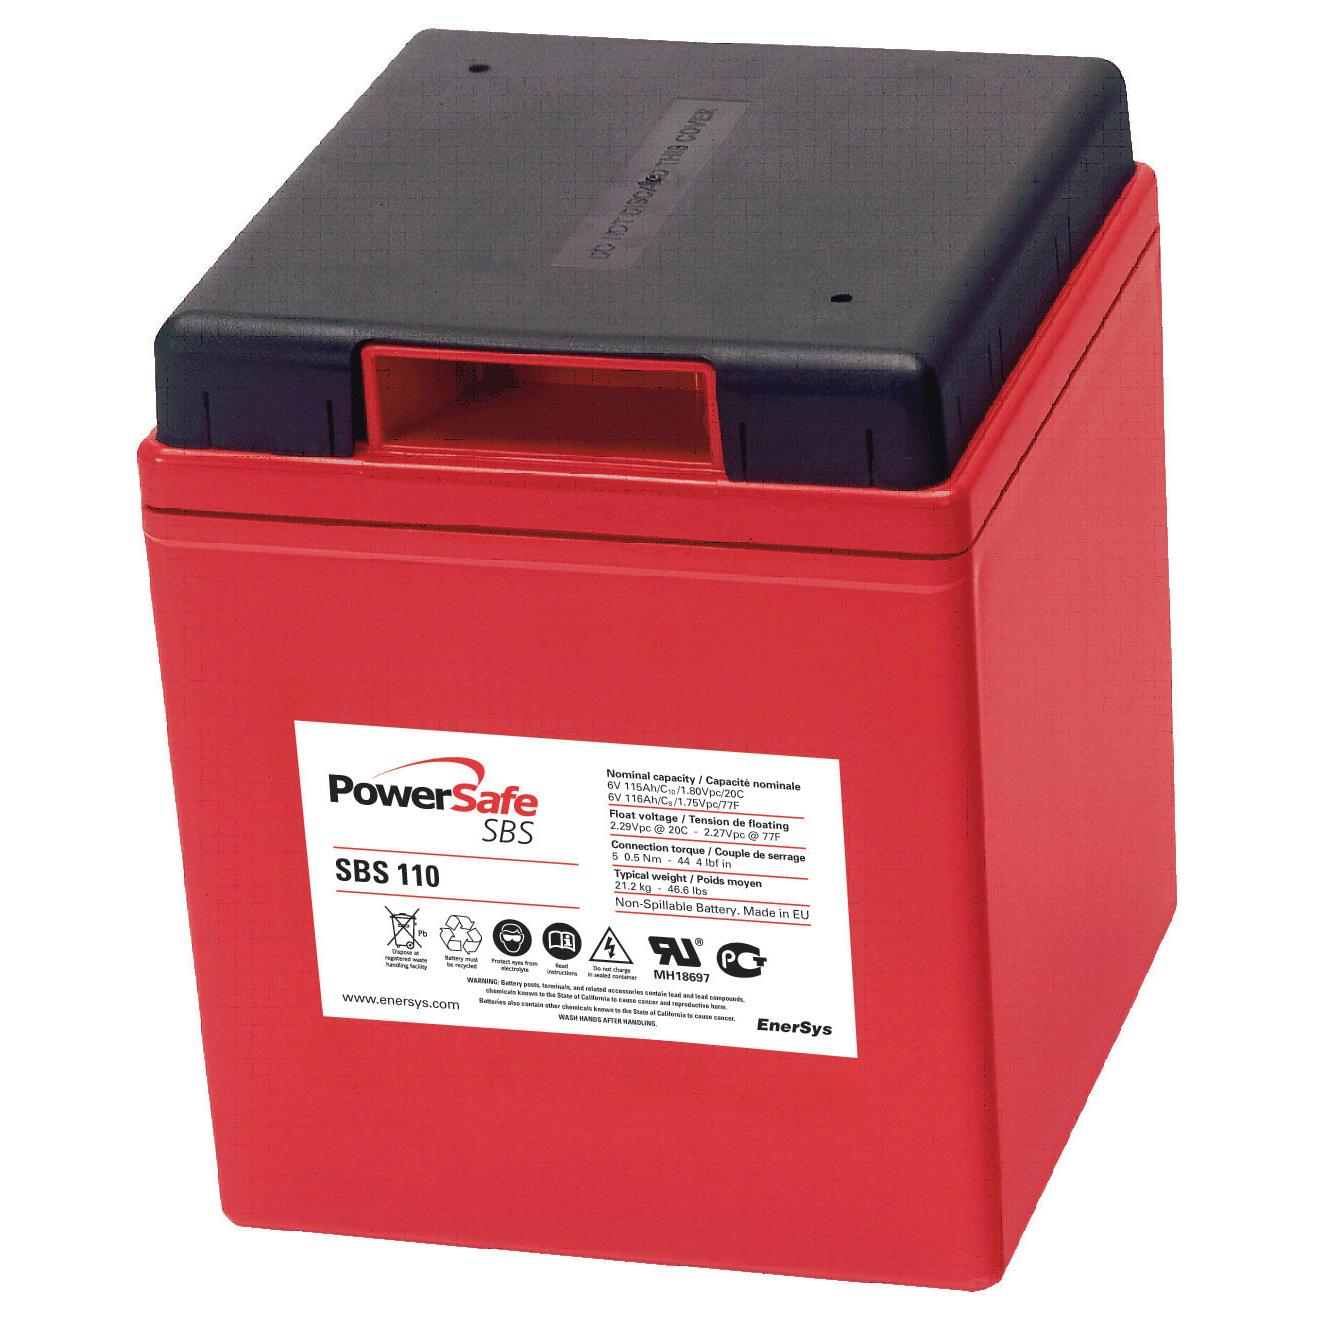 EnerSys PowerSafe SBS 110 6V 115Ah